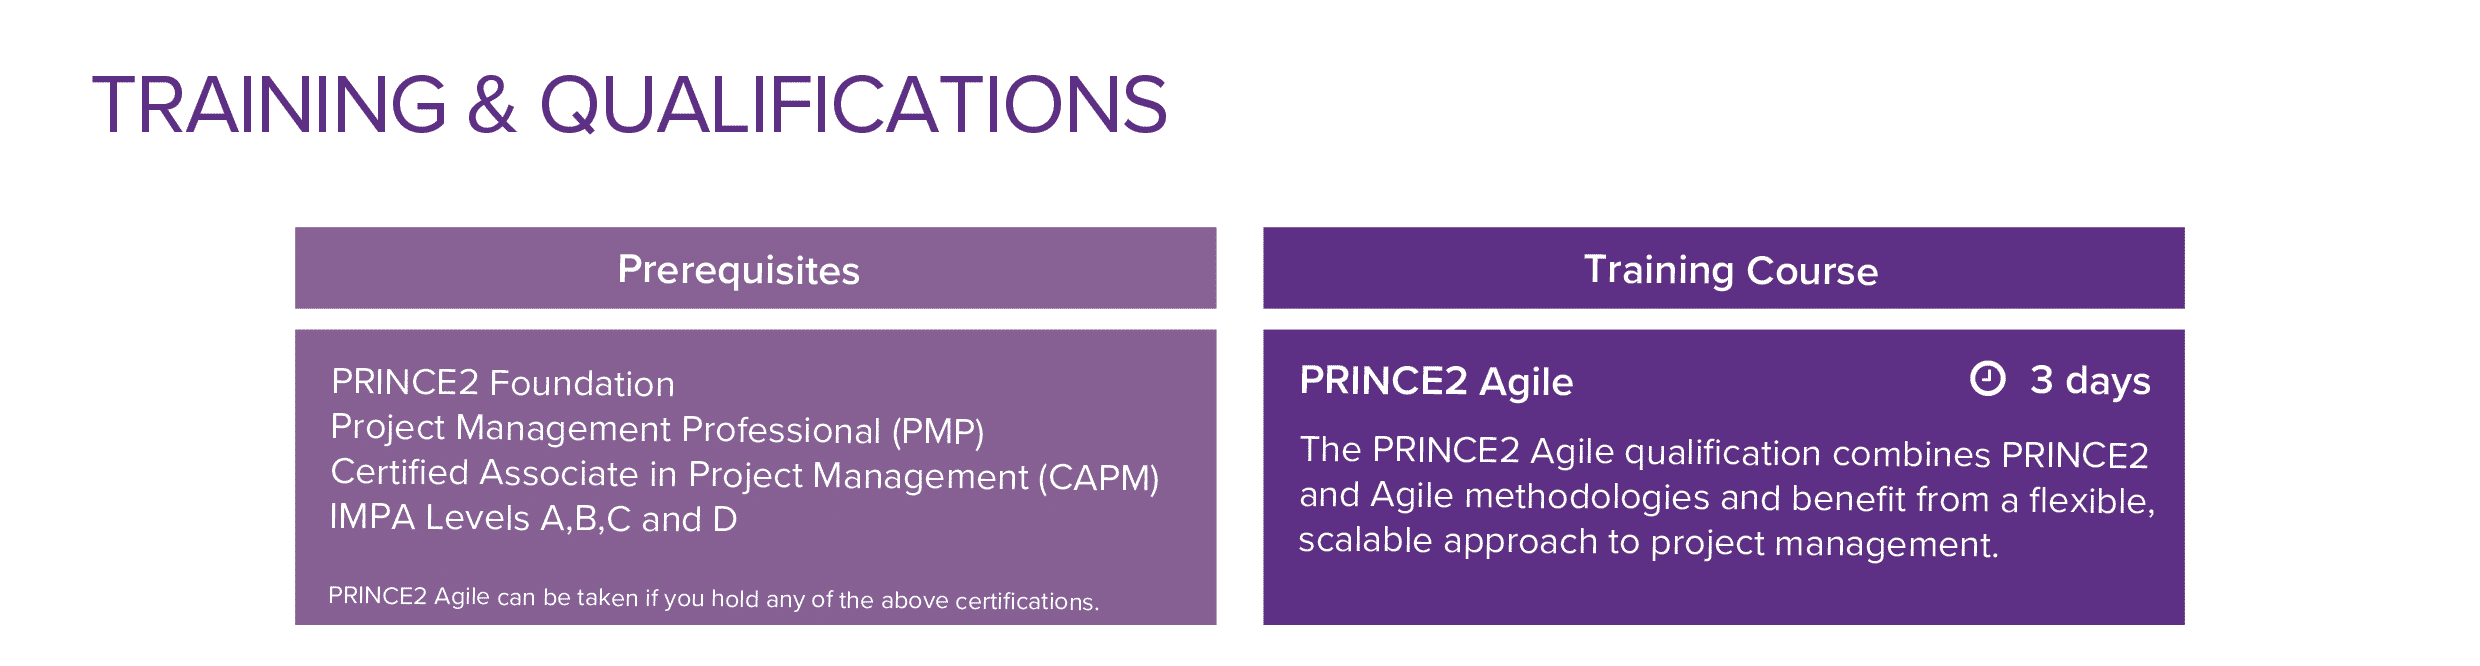 PRINCE2 Agile Training and Qualifications